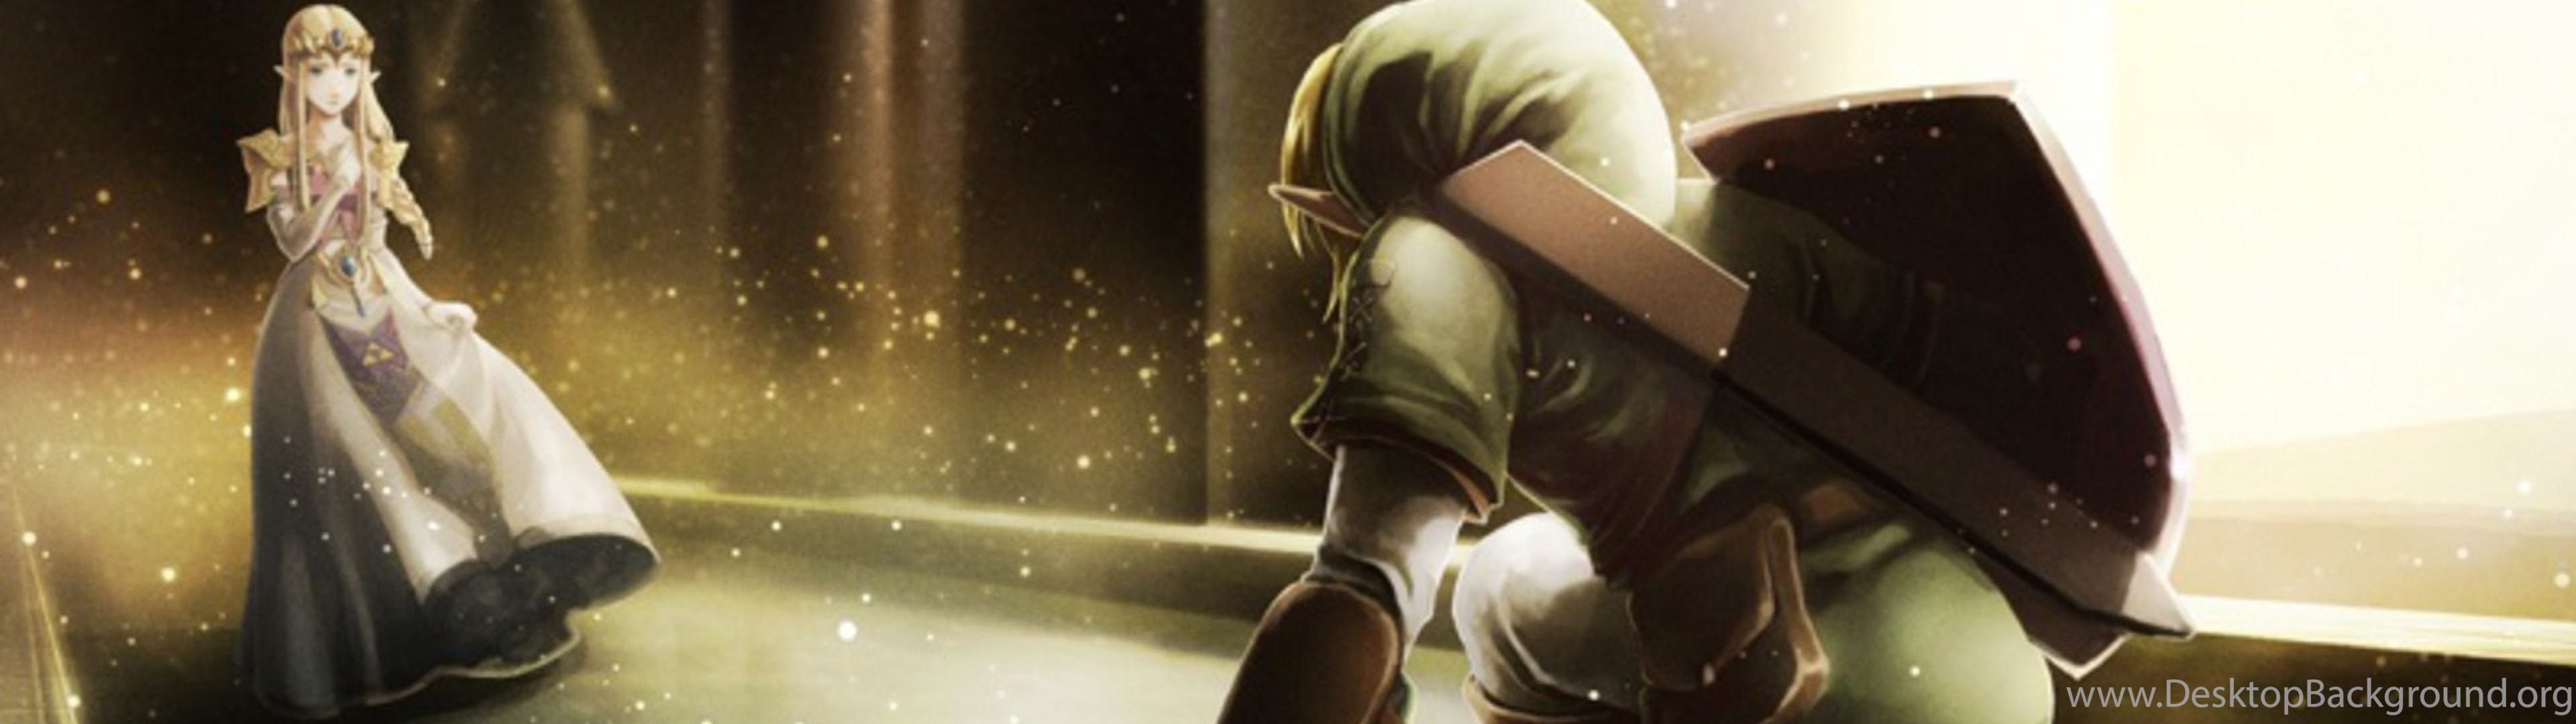 Download Wallpapers 3840x1200 The Legend Of Zelda Character Elf